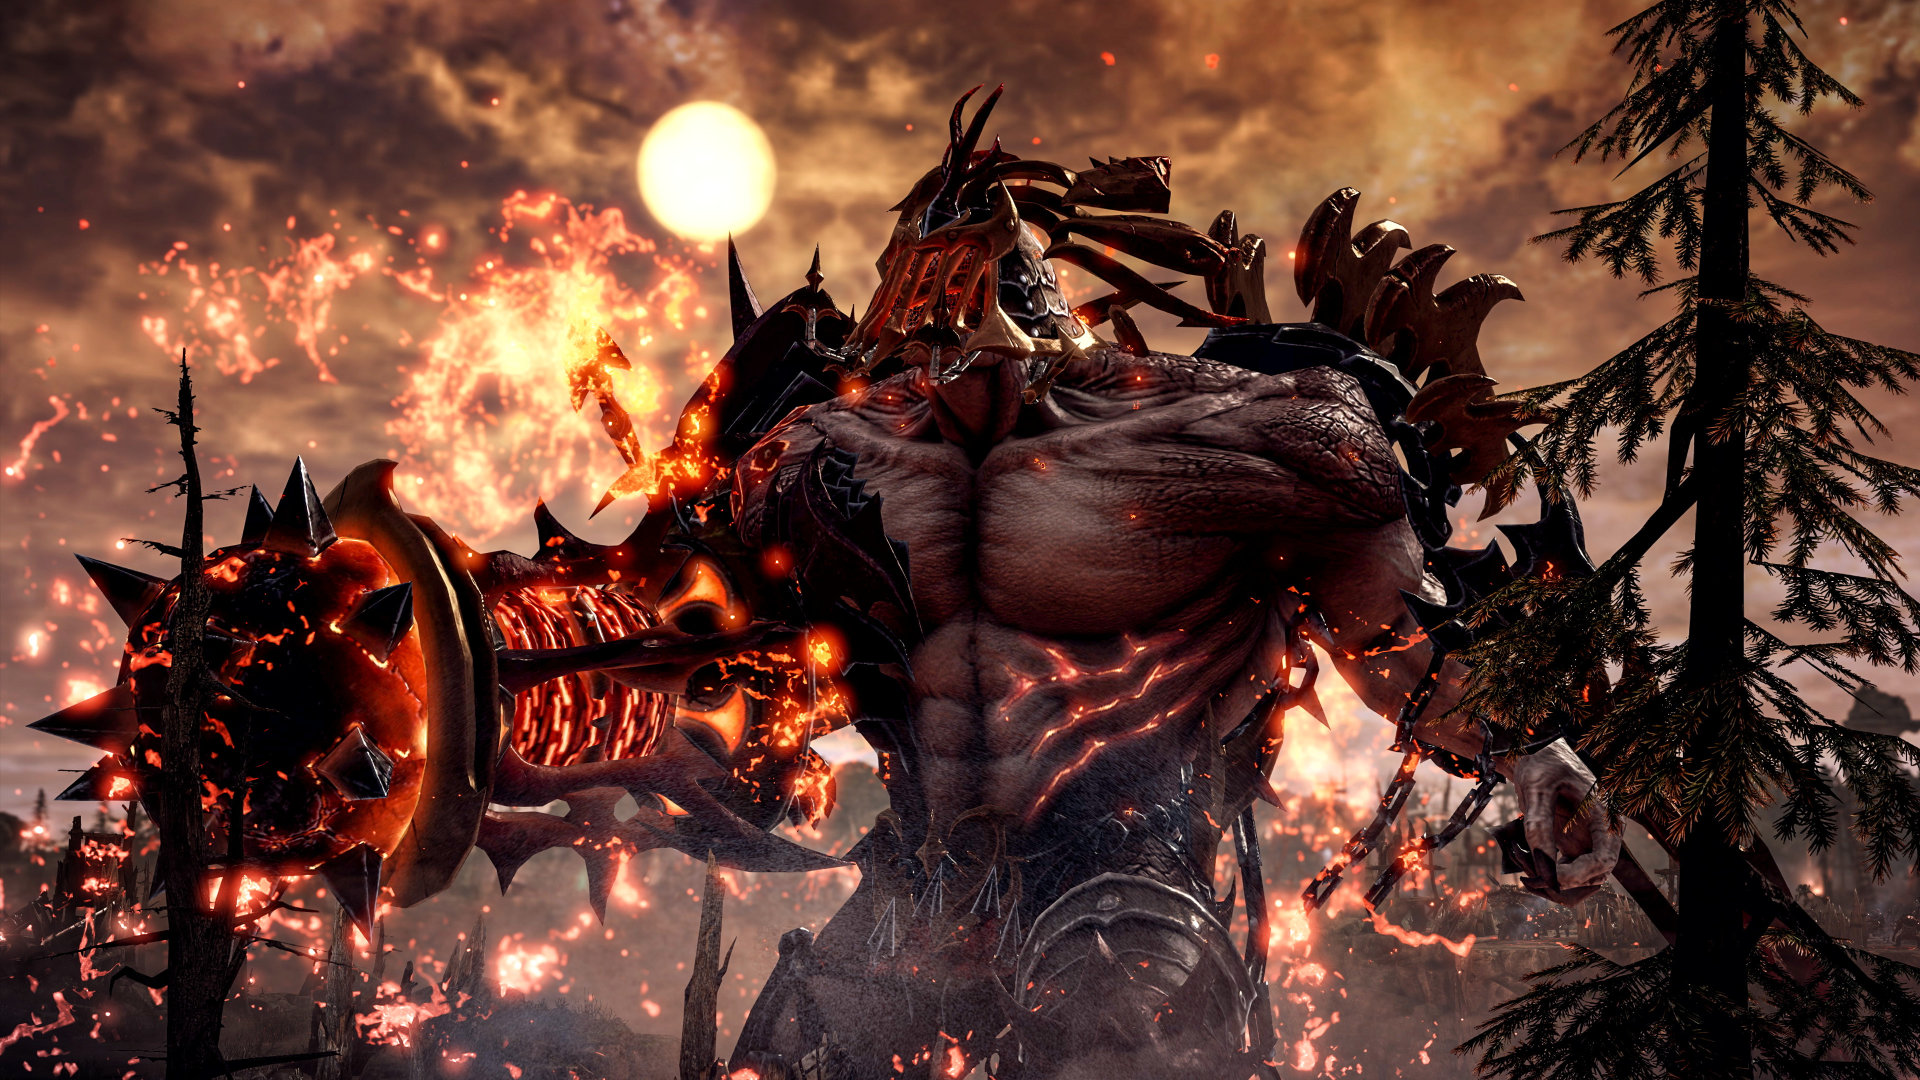 A screenshot of a large demonic creature with pale skin in the MMORPG Lost Ark. It is standing infront of a flame-lit sky with the moon glowing brightly in the background.